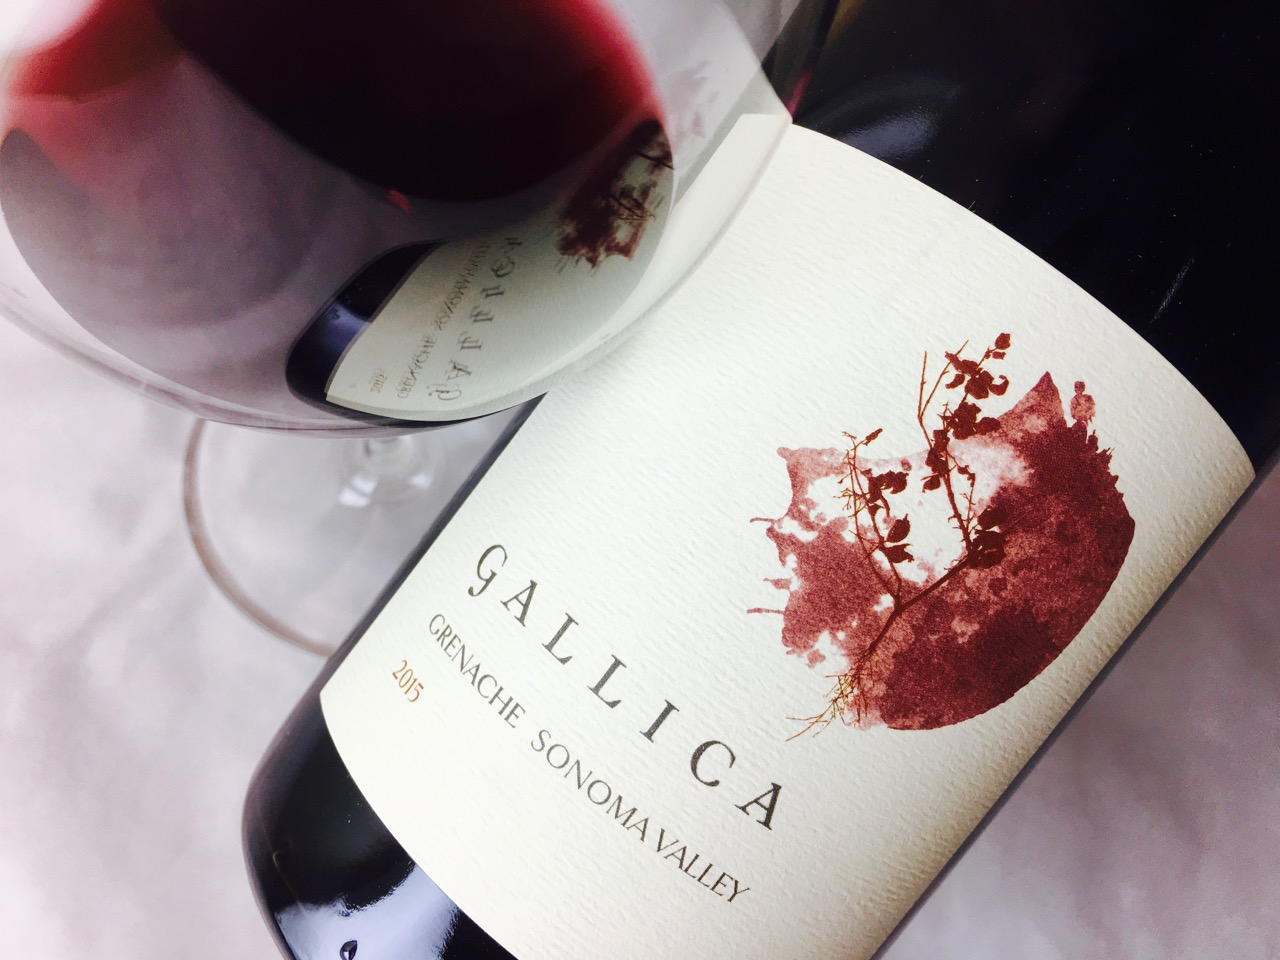 2015 Gallica Grenache Steel Plow Vineyard Sonoma Valley